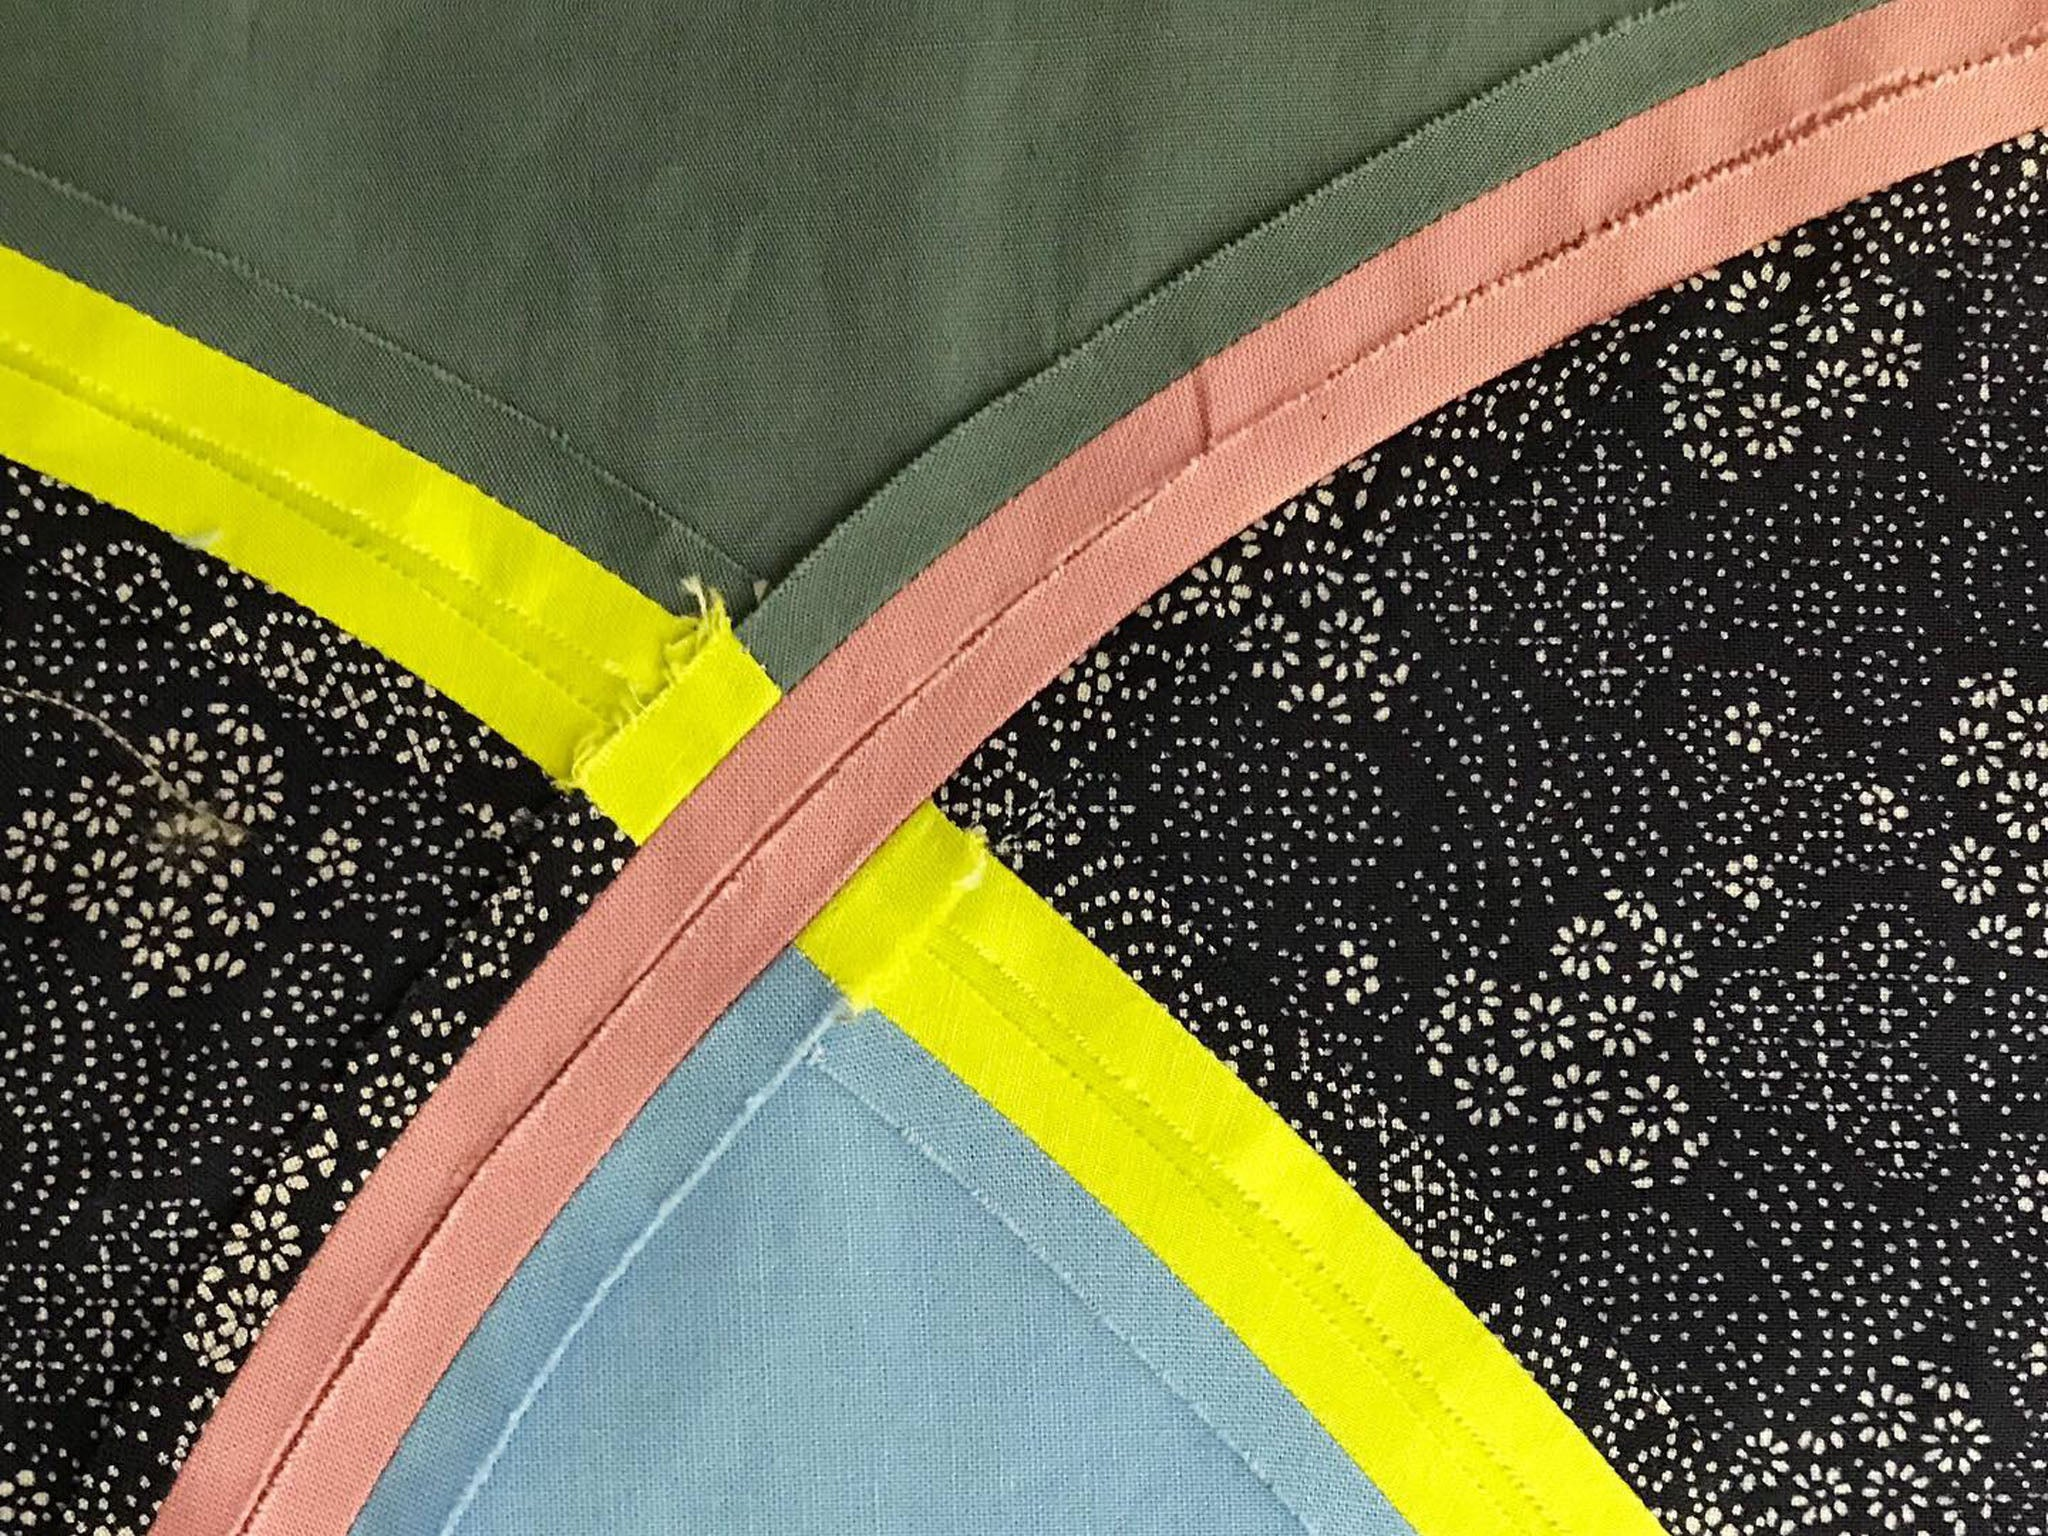 Watermelon From Mars, a quilt by Patricia Belyea, in process